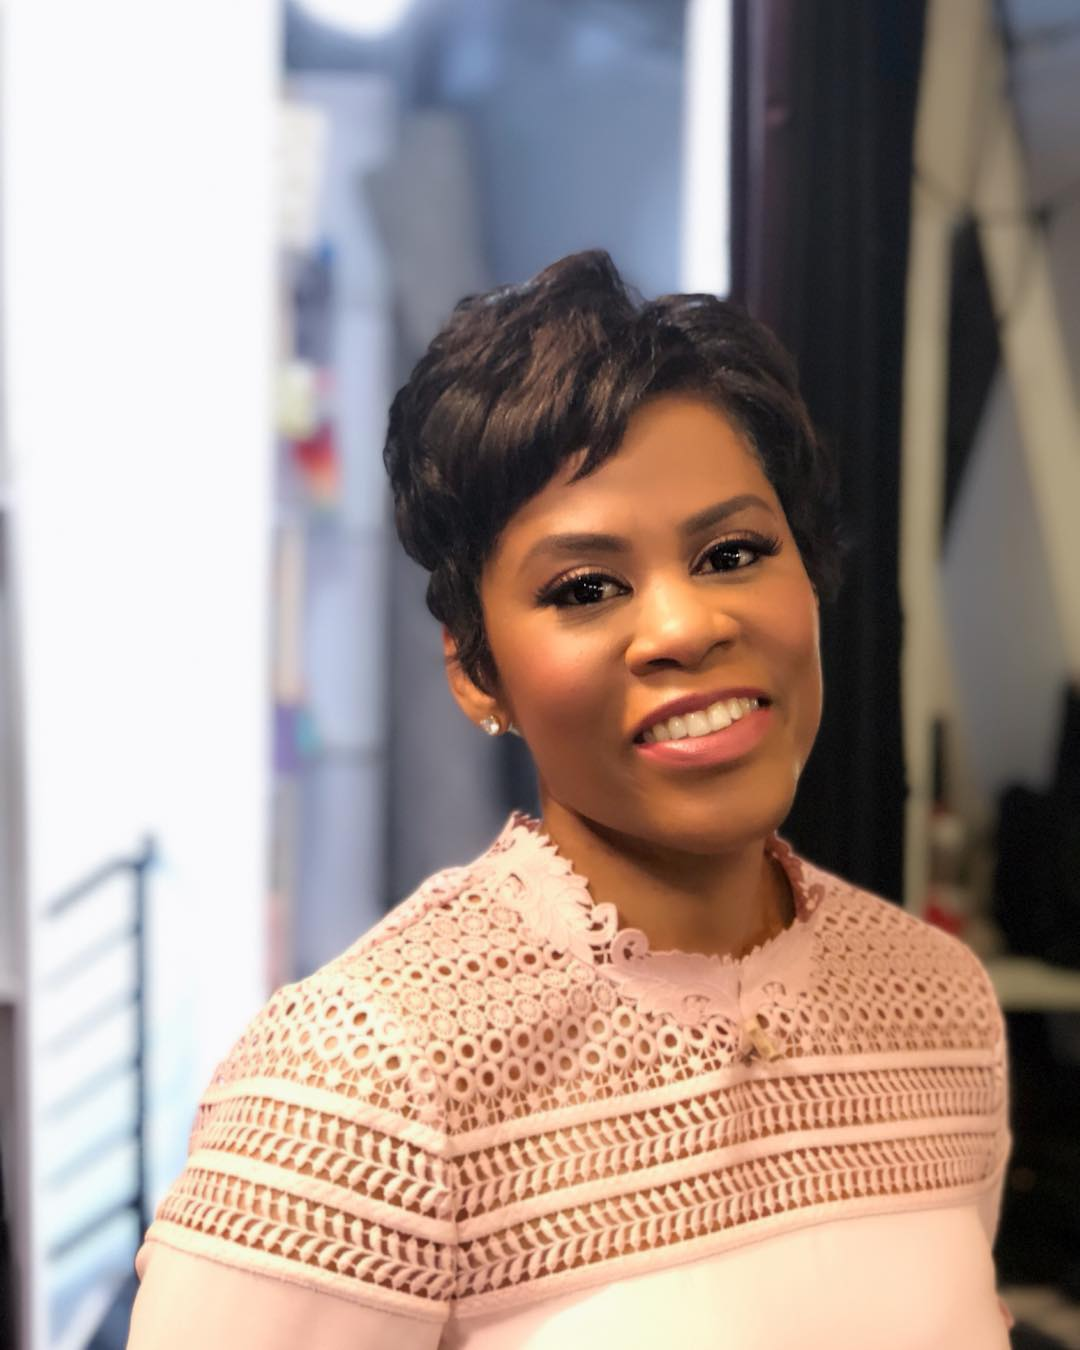 Marci Ien Bio, Age, Height, Family, Husband, Salary, Net Worth, CTV - Marci Ien Bio Age Height Family Husband Salary Net Worth